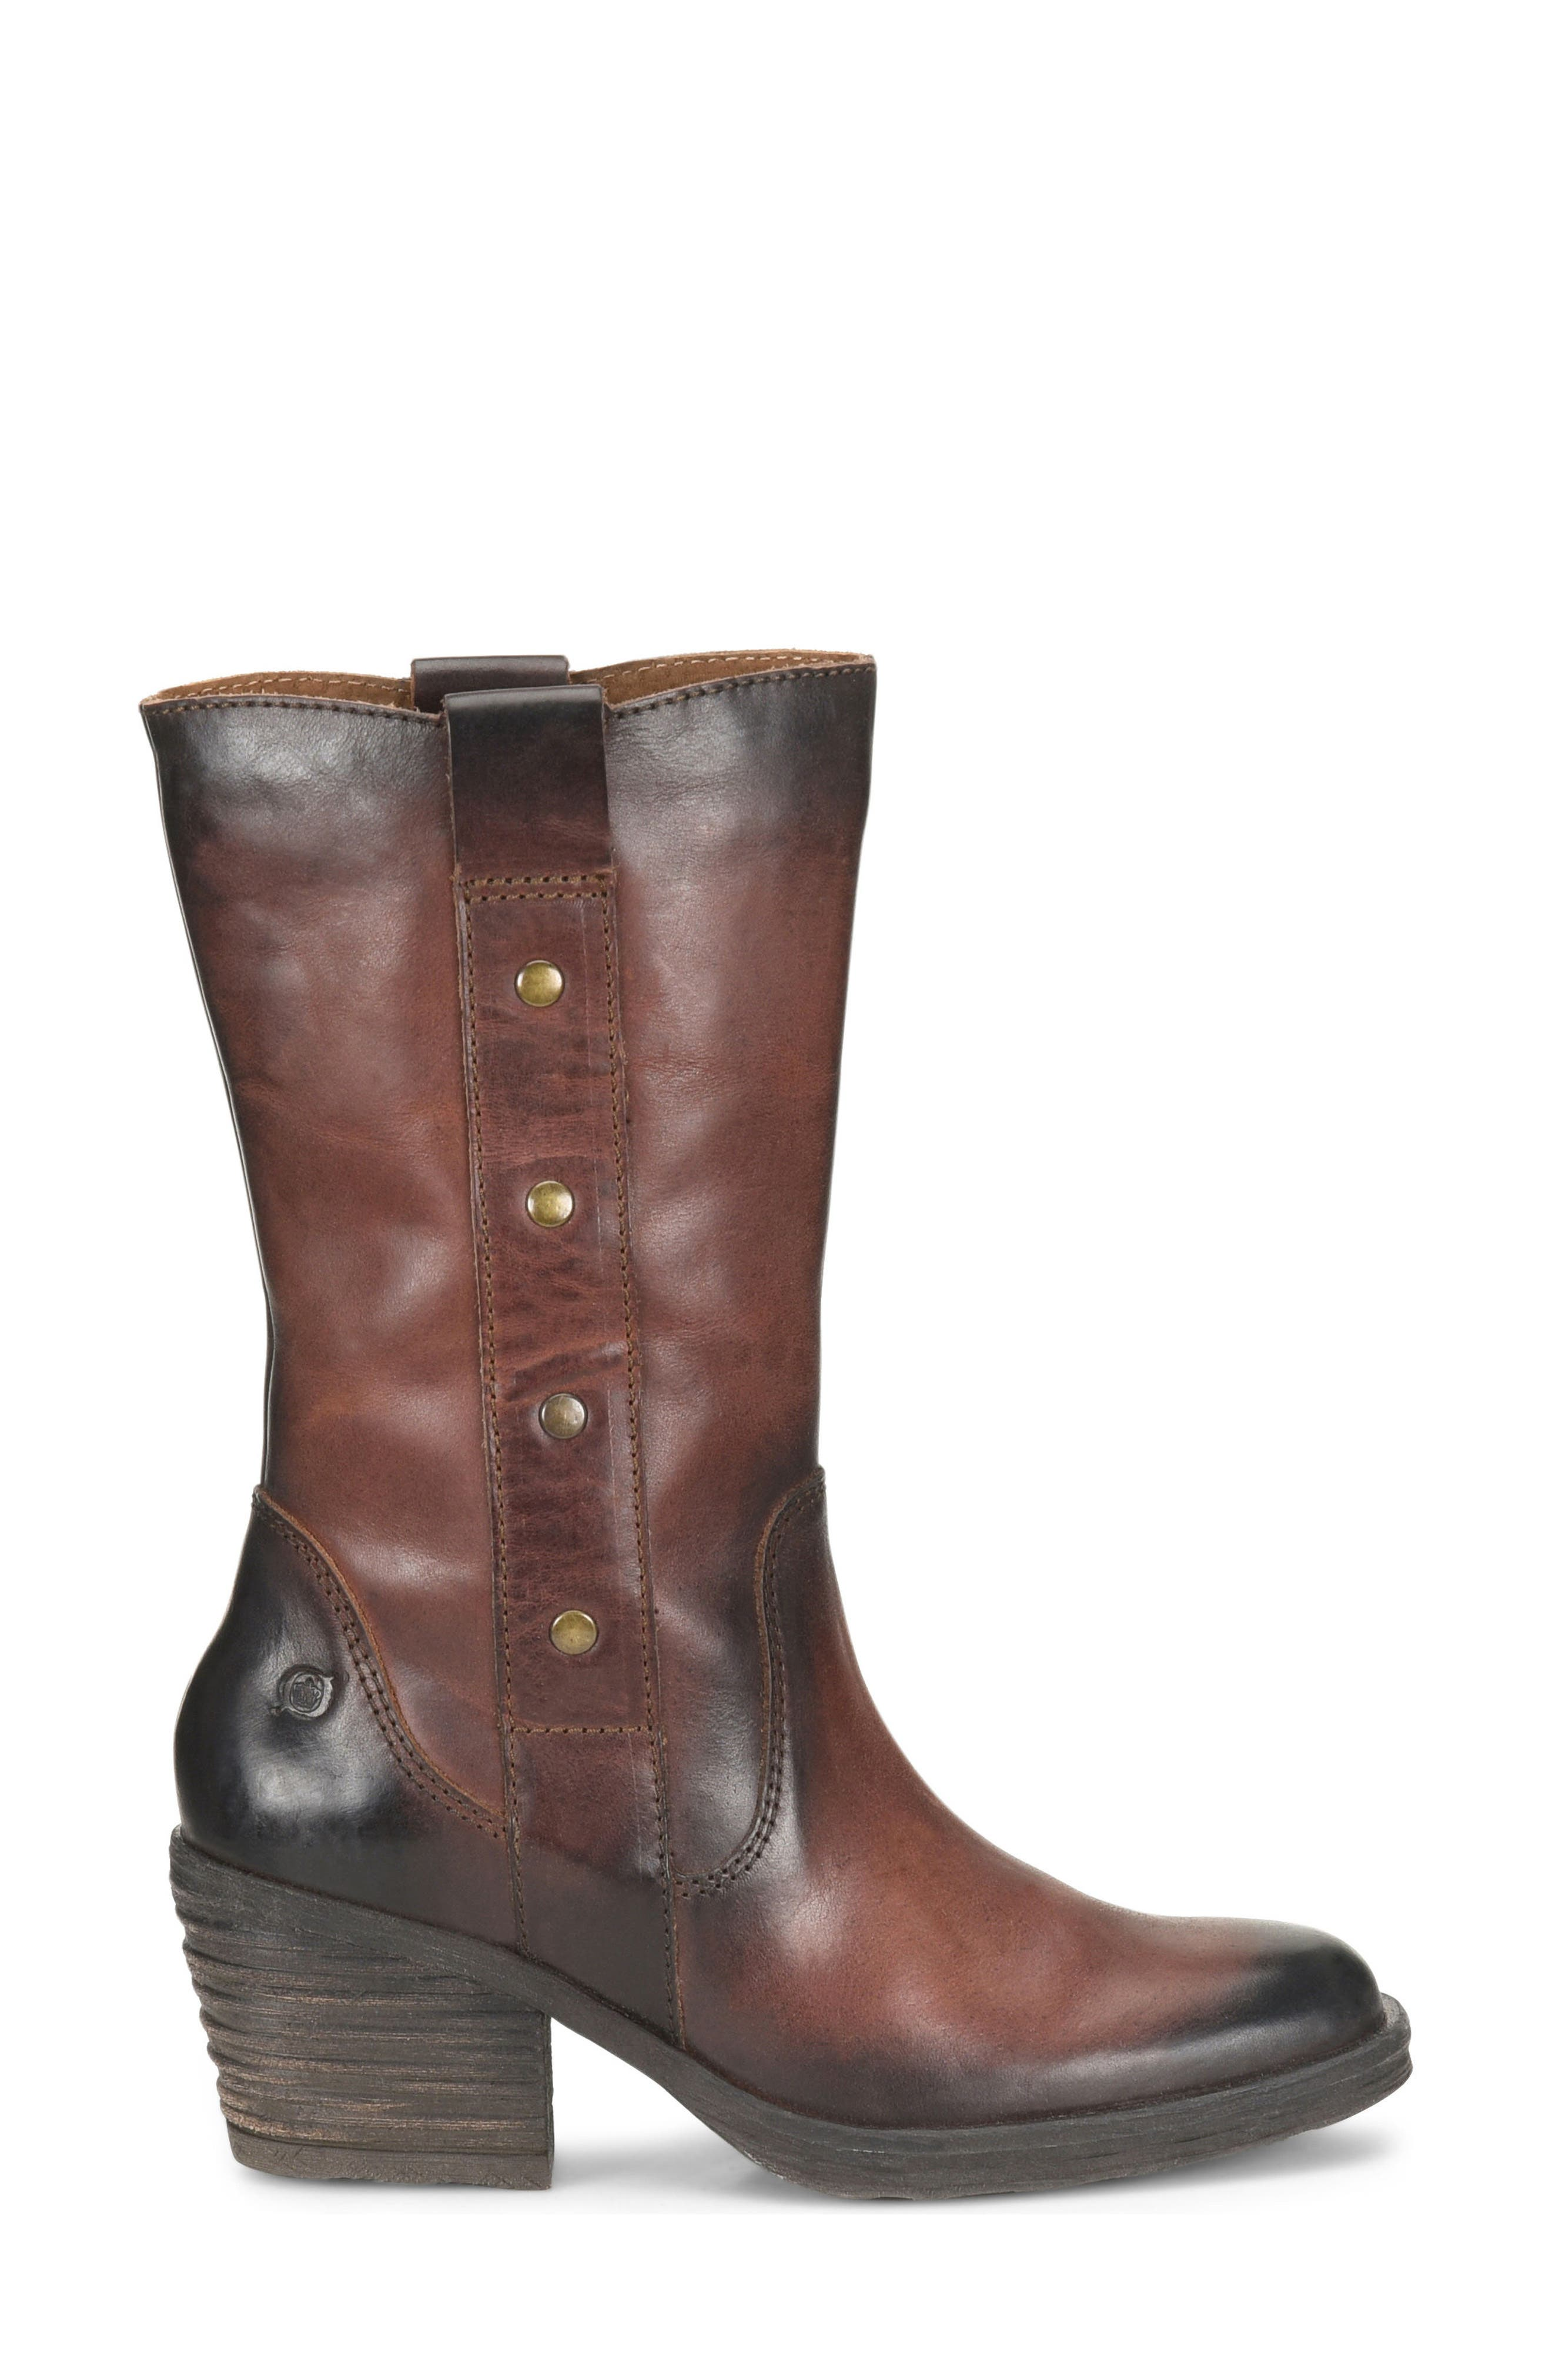 Copper Studded Boot,                             Alternate thumbnail 3, color,                             200